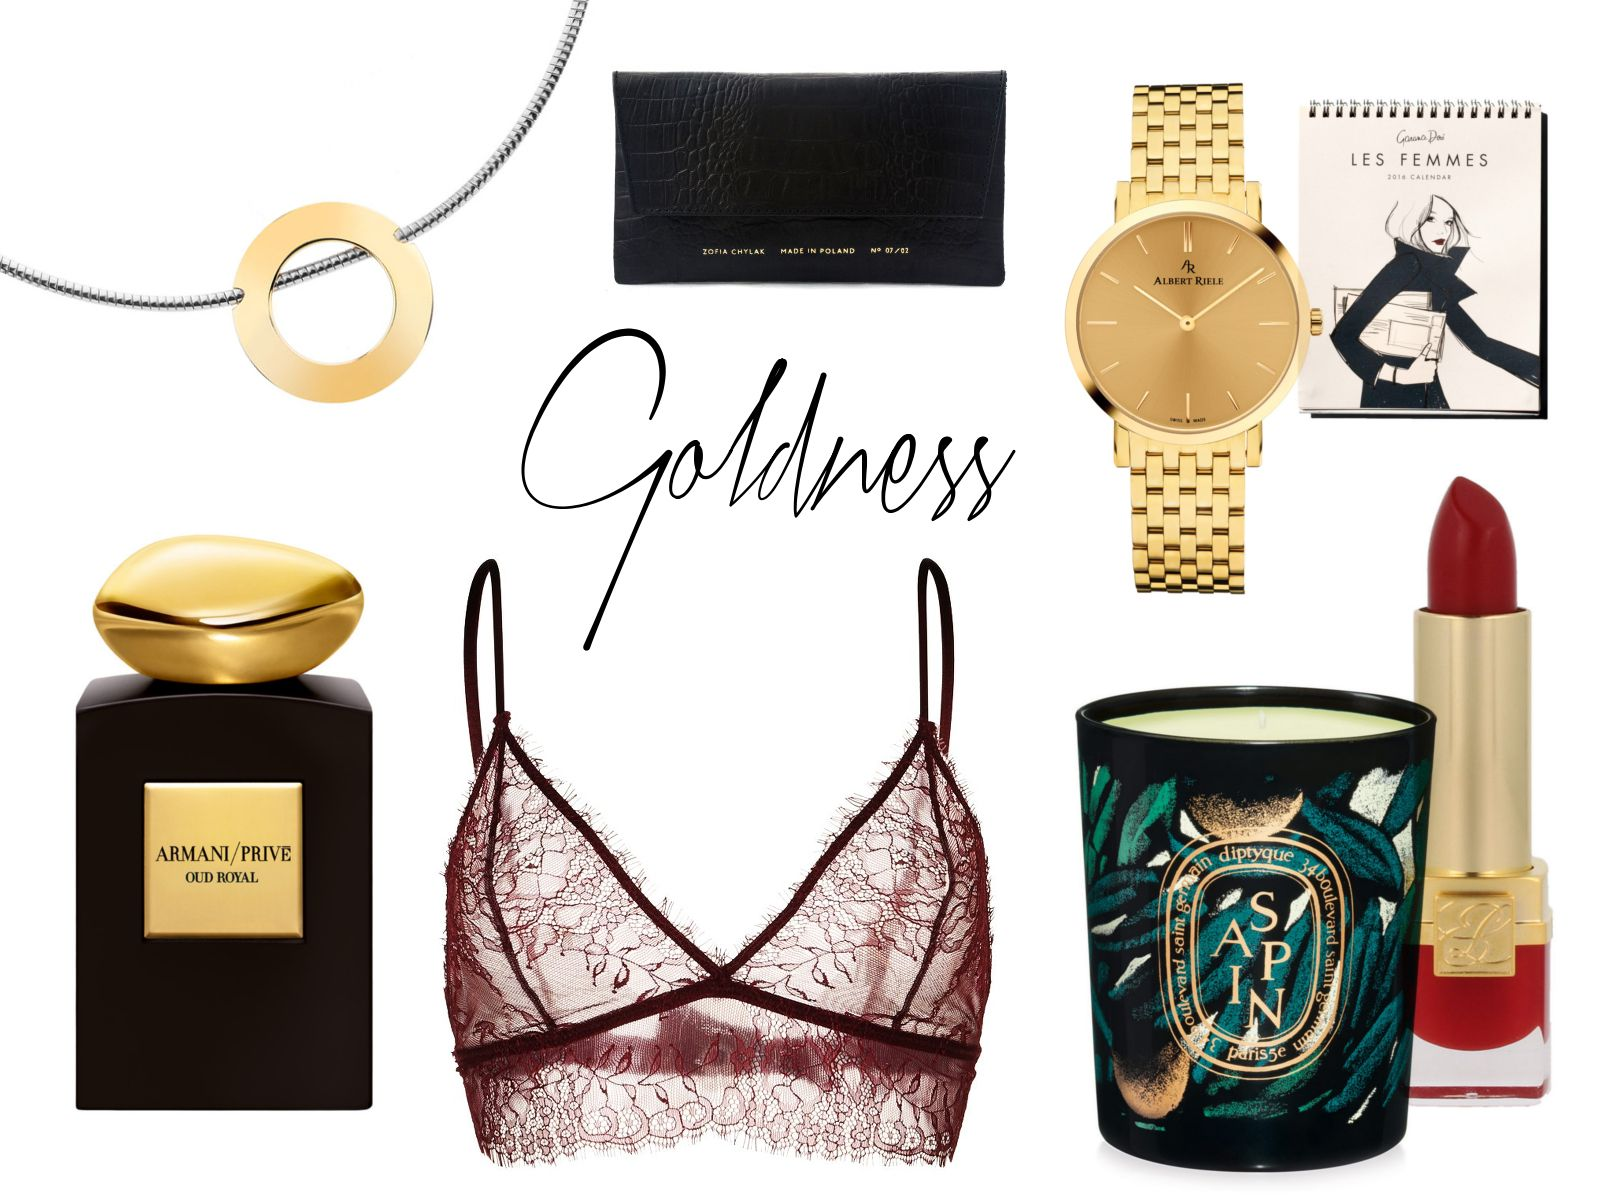 AGNESA ADAMCZAK: Perfect ideas for Christmas gifts